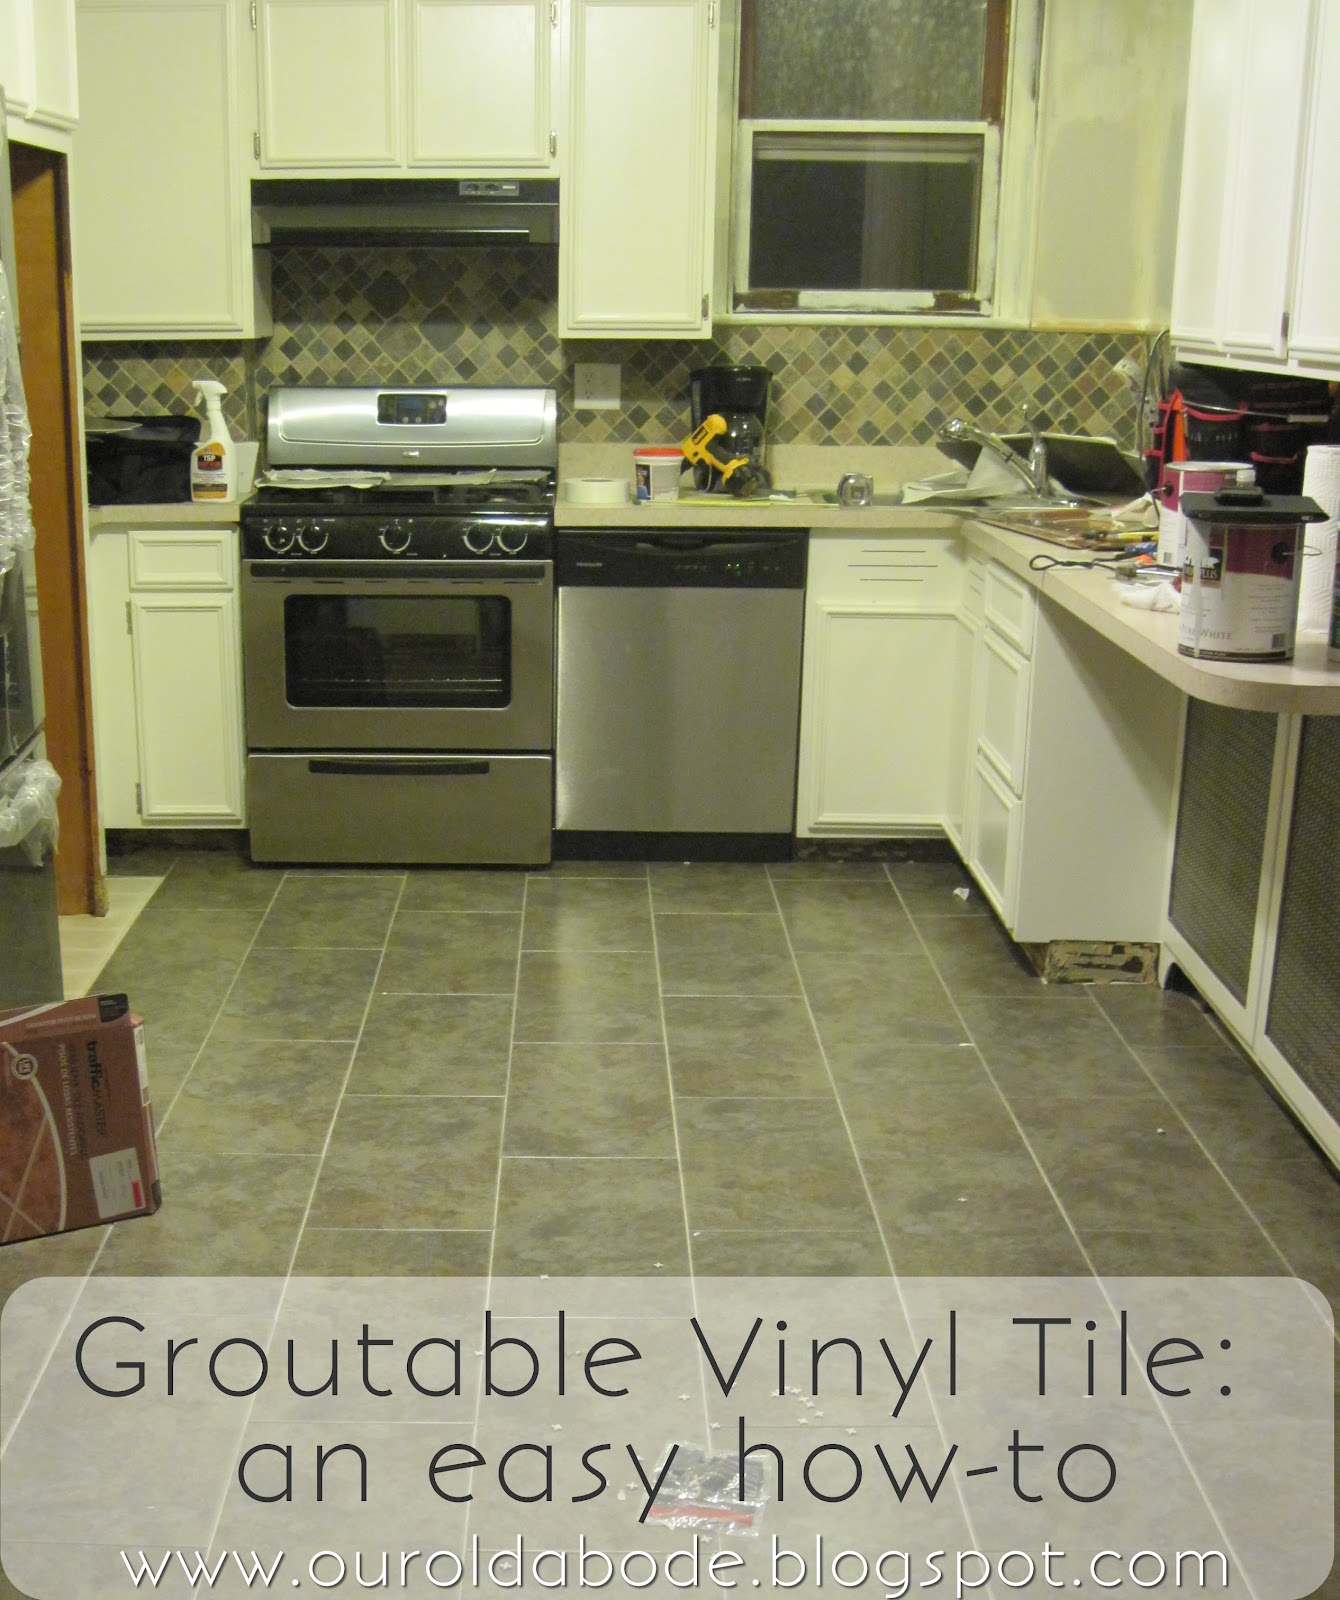 Vinyl Flooring In Kitchen Our Old Abode Kitchen Floor Groutable Vinyl Tile